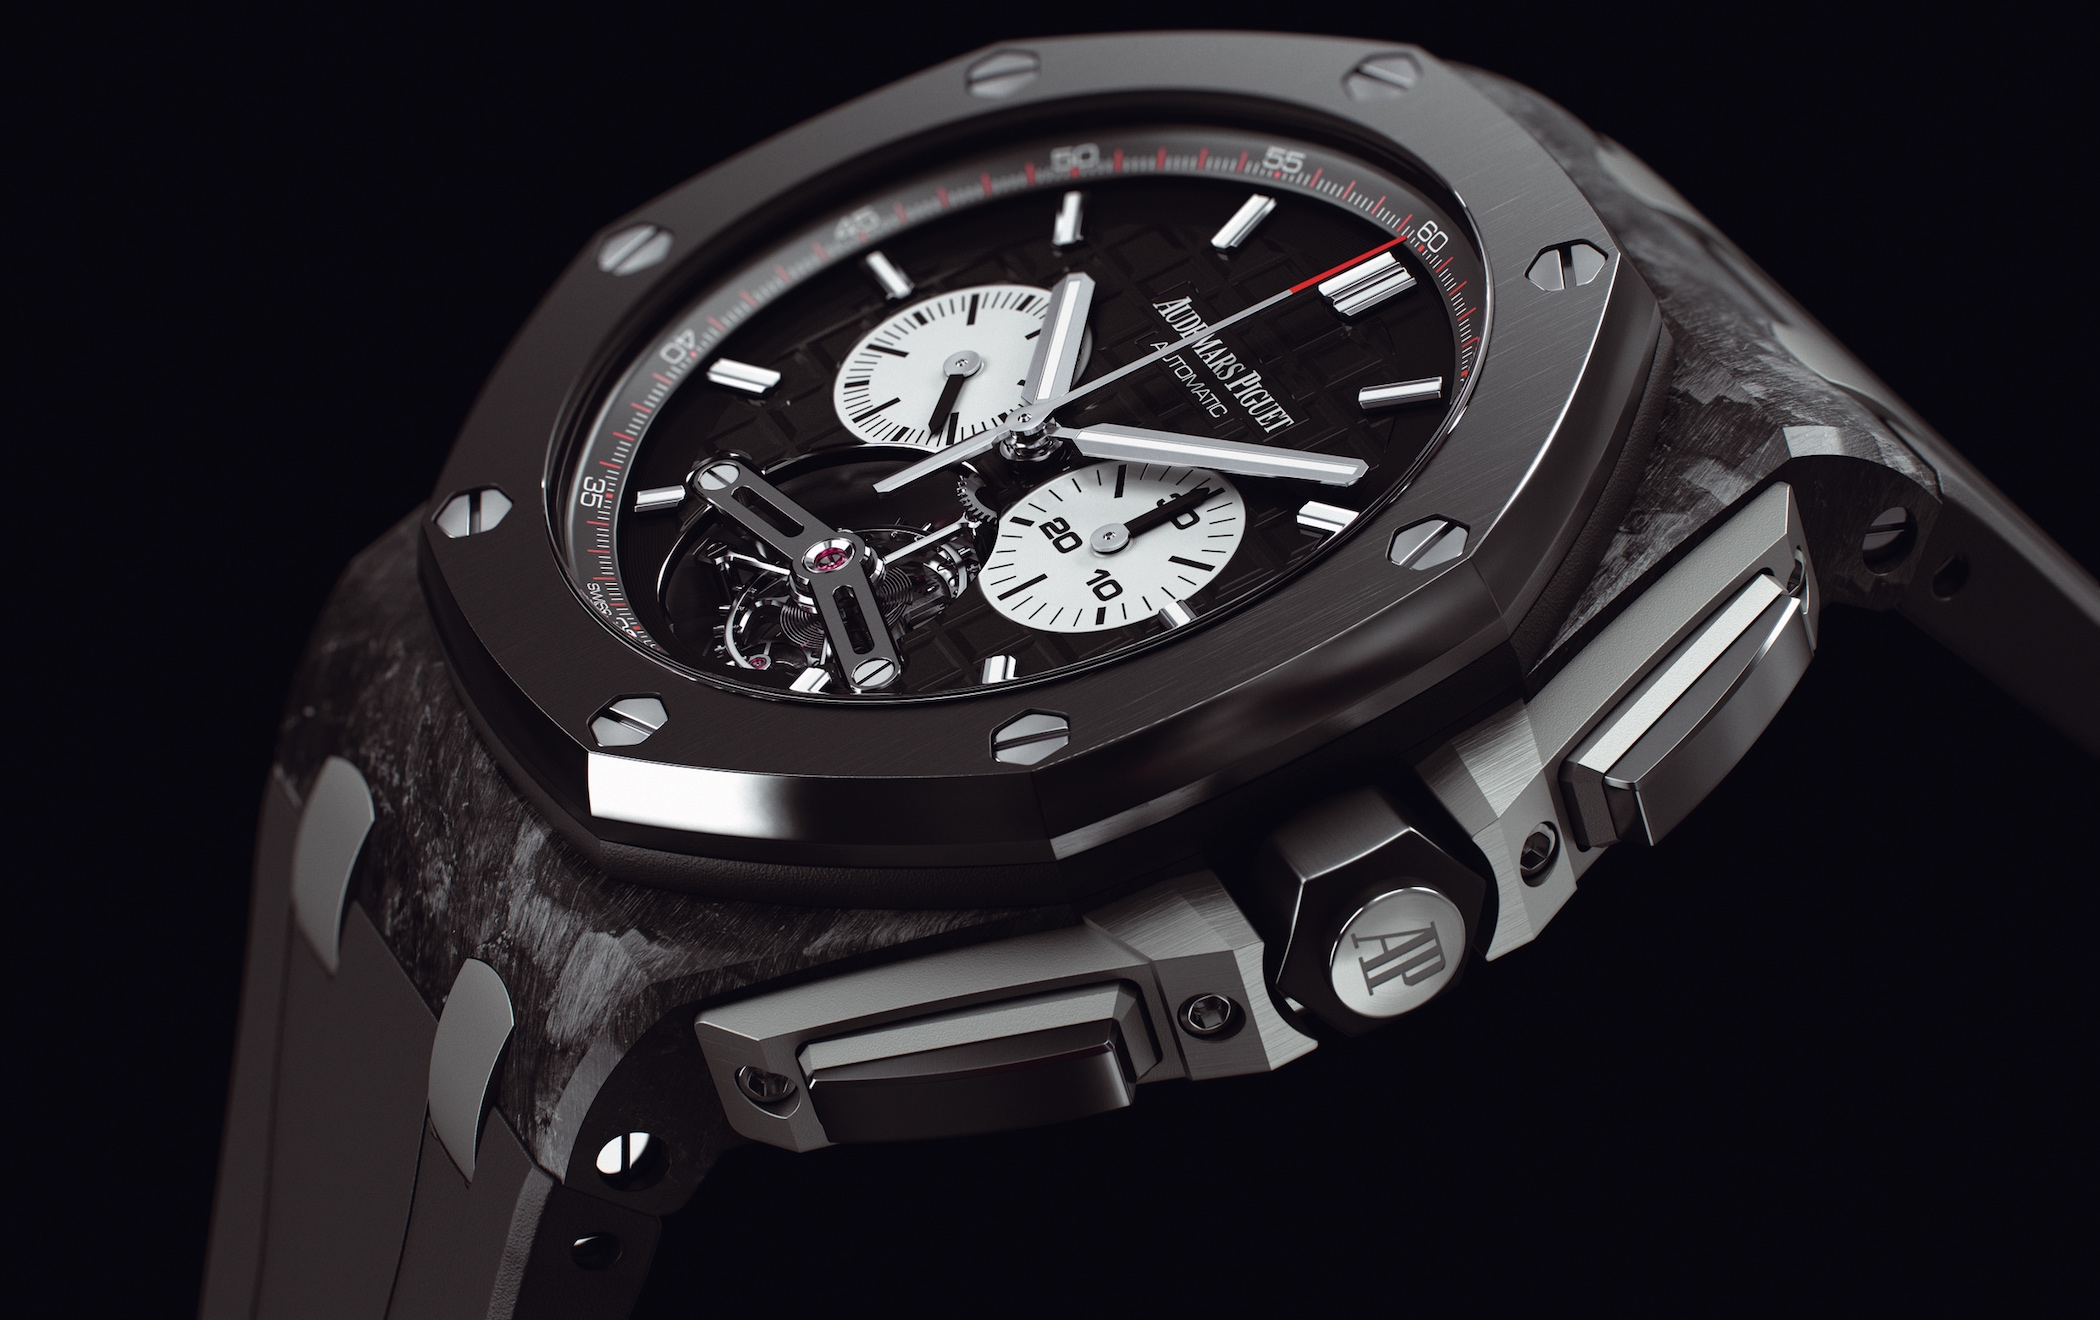 Audemars Piguet Royal Oak Offshore Ref. 26550AU